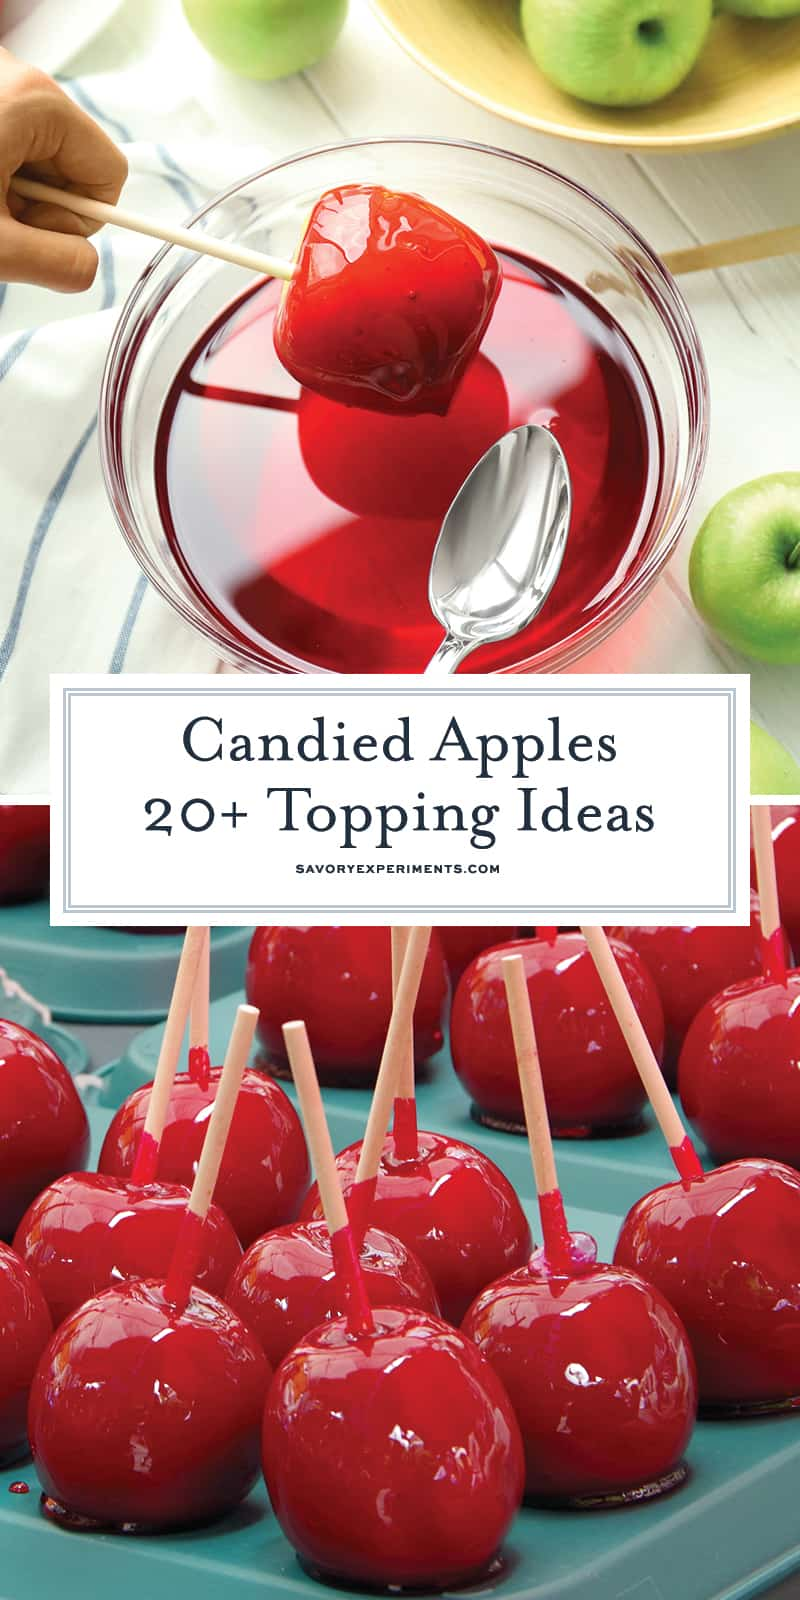 The classic candied apple is a beautifully colorful, glassy red apple. A lollipop candy coating with lush and slightly sour crunchy apple inside. #candiedapples www.savoryexperiments.com